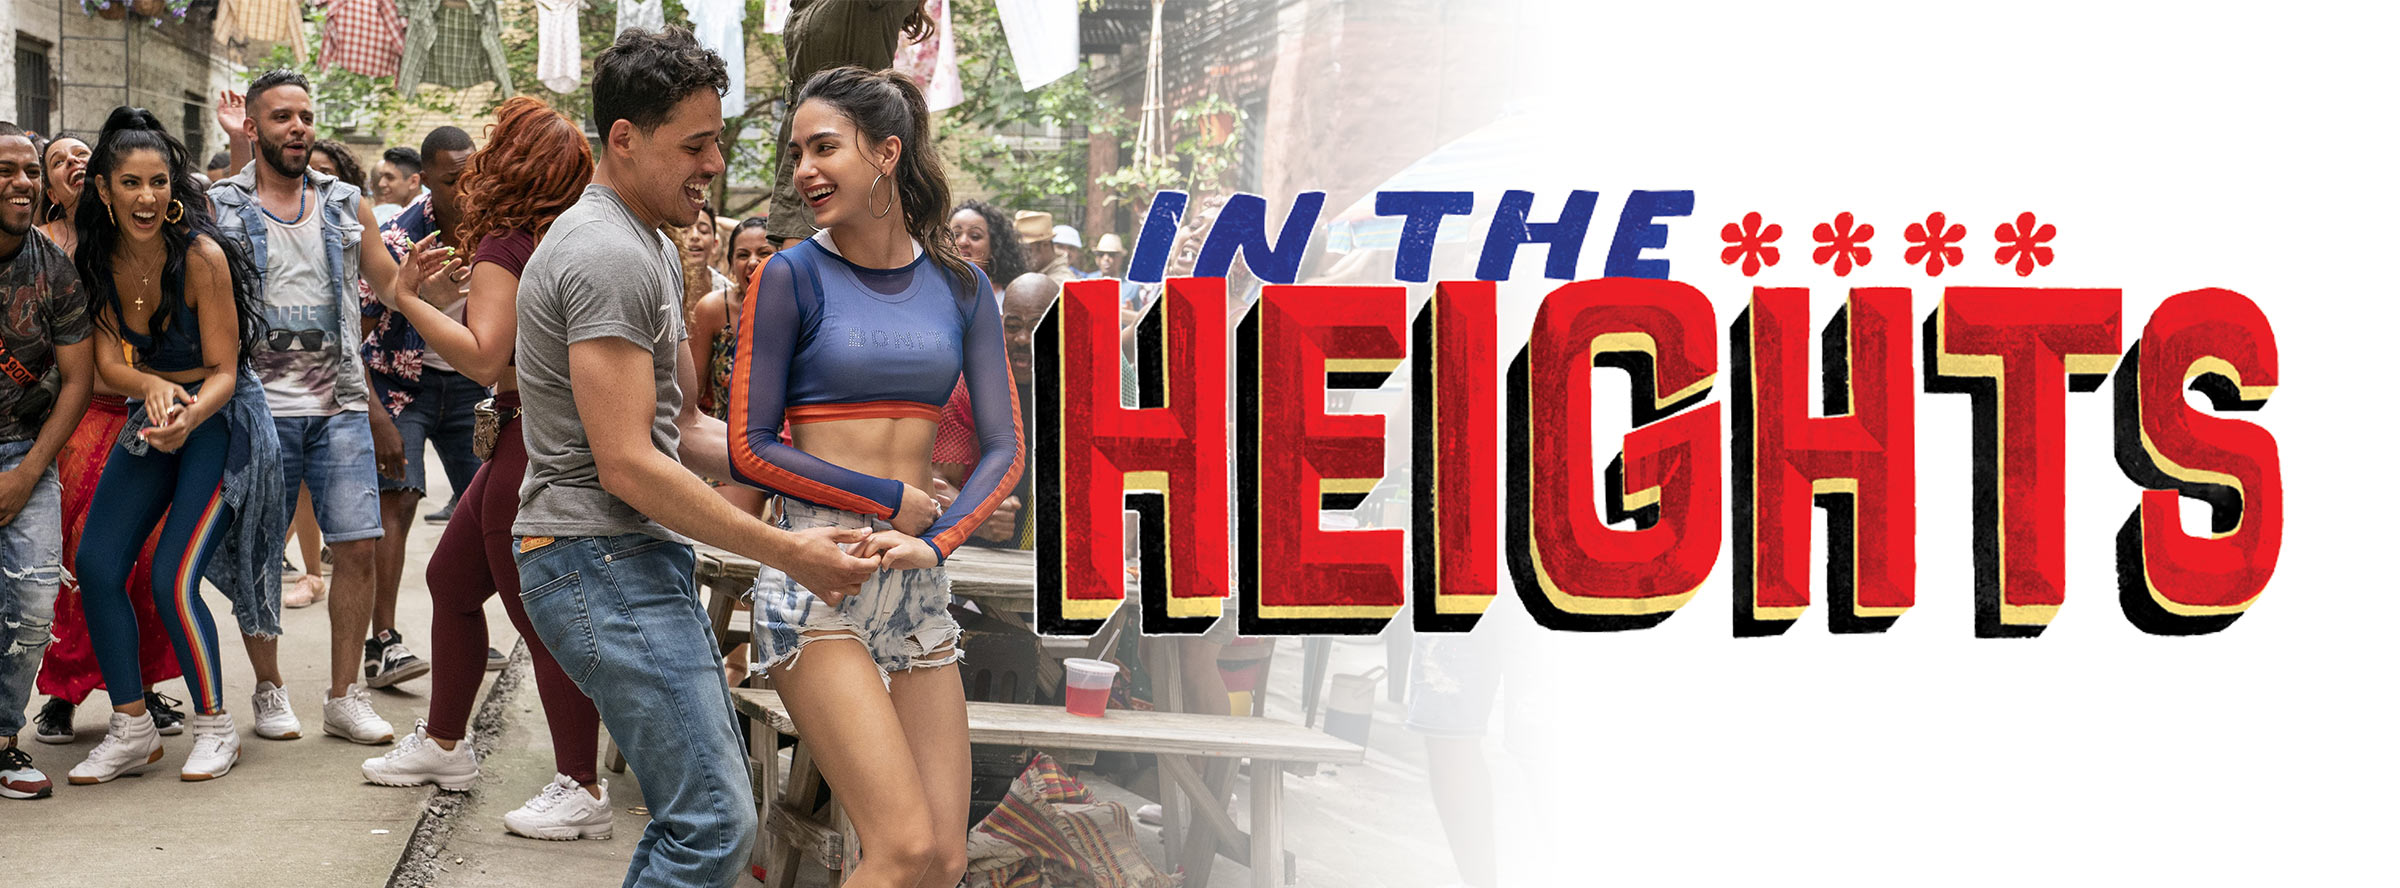 Slider Image for In the Heights